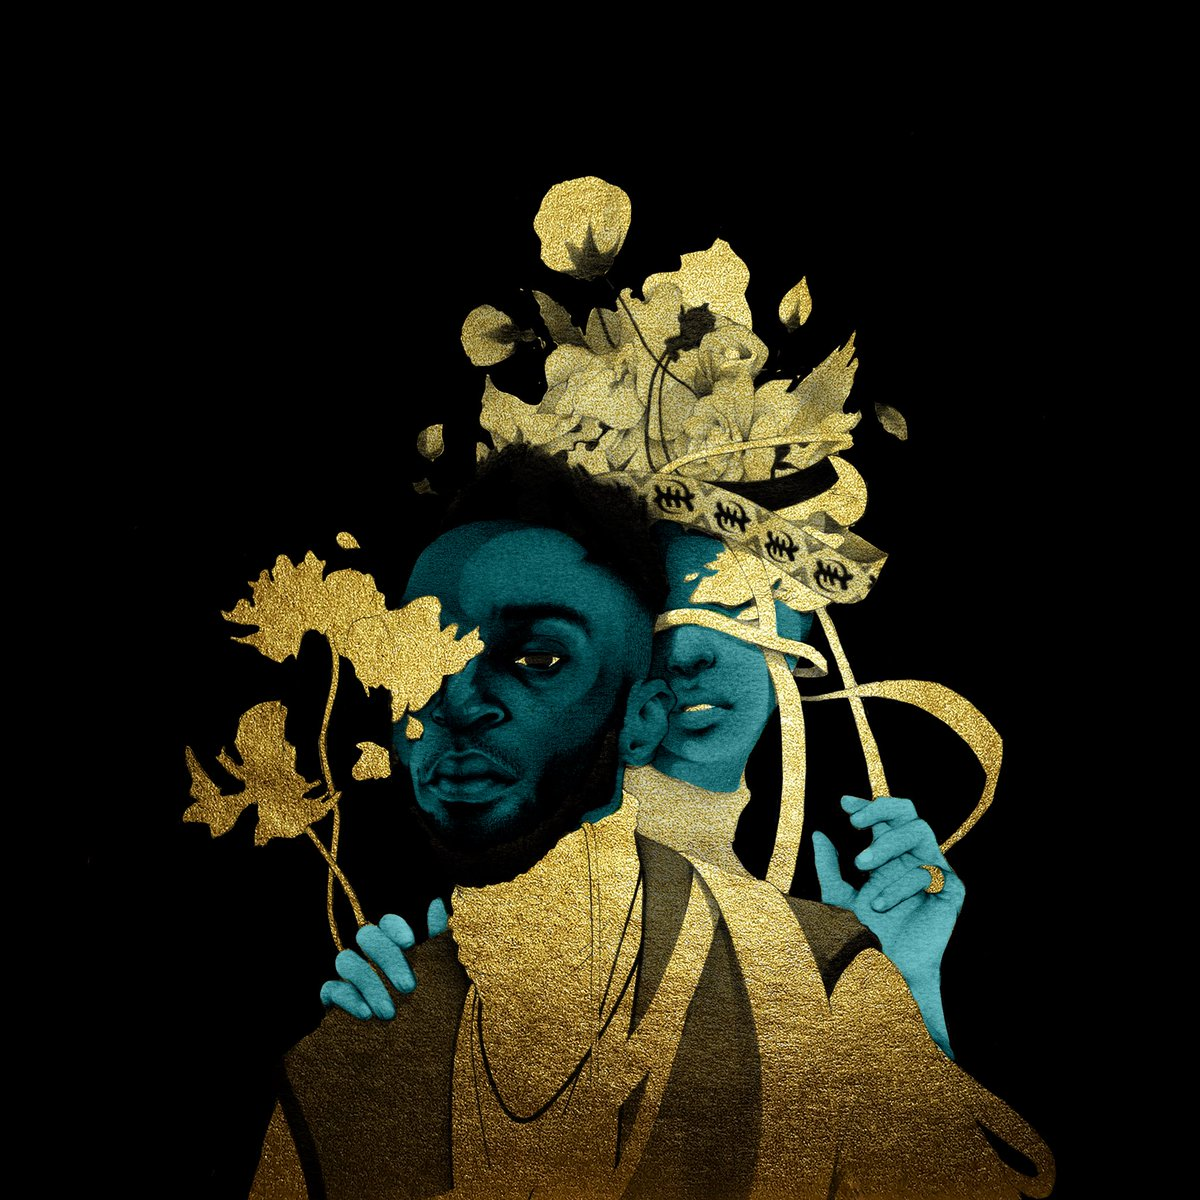 KOJEY RADICAL - IN GODS BODY (SELF-RELEASED, 2017)